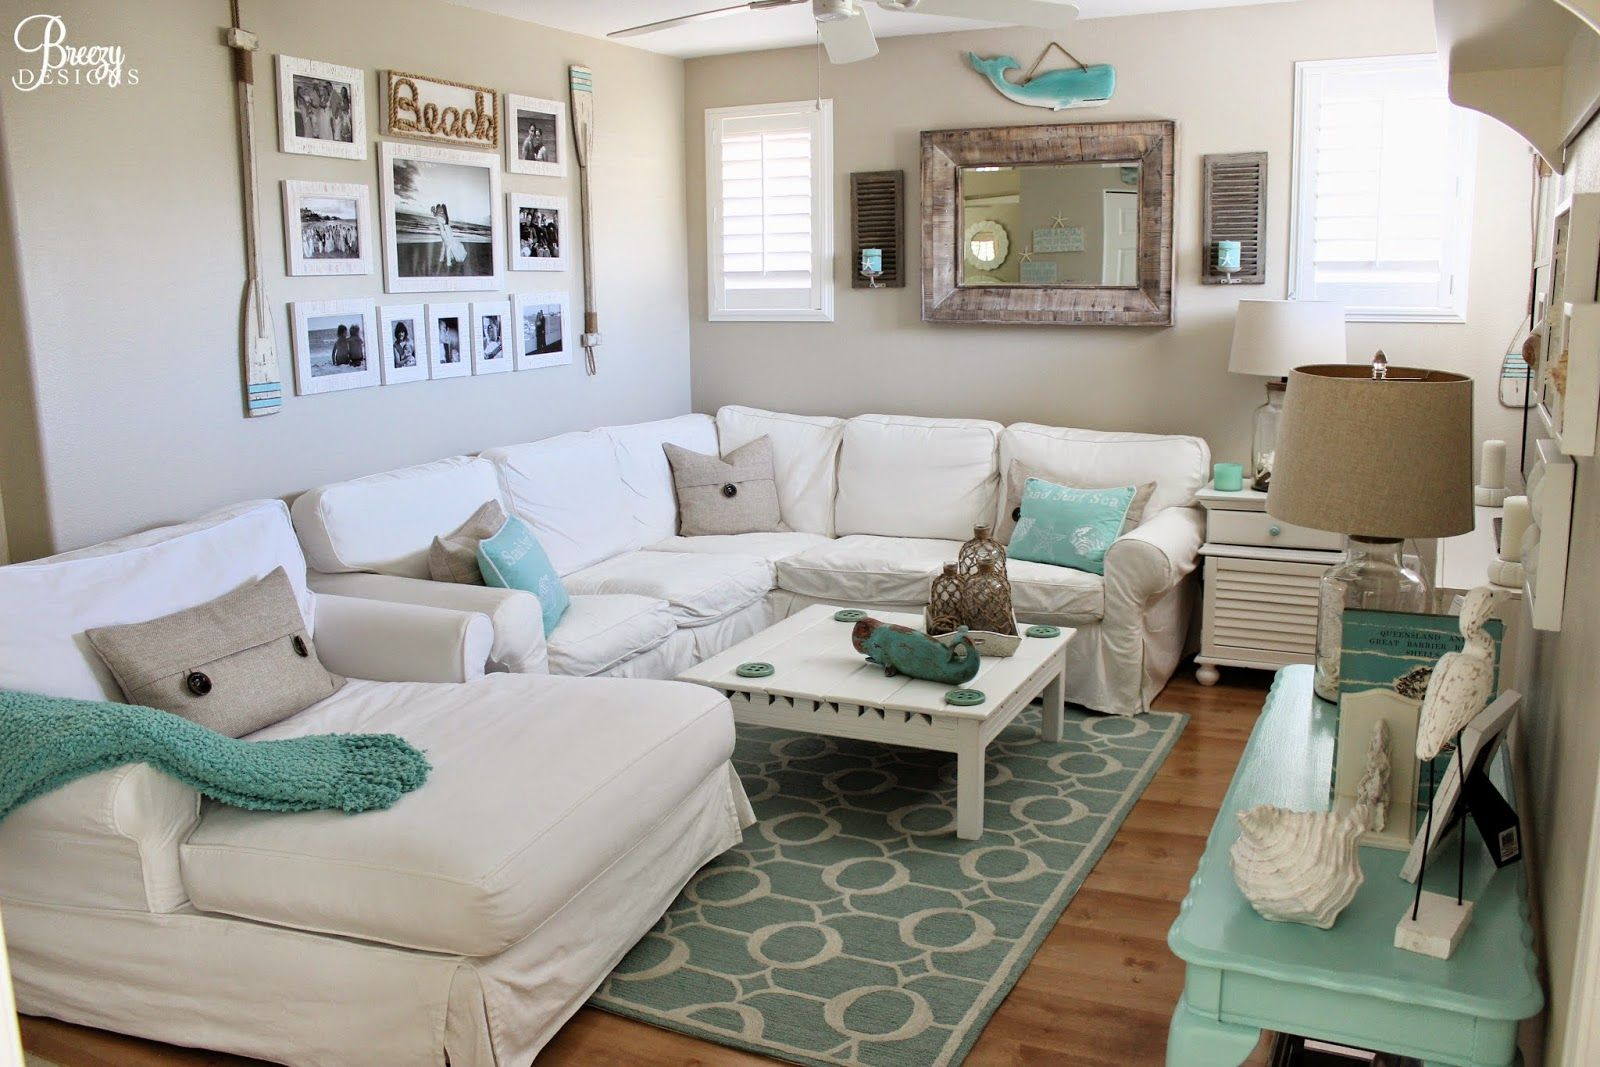 Best Beach Chic Coastal Cottage Home Tour With Breezy Design 400 x 300